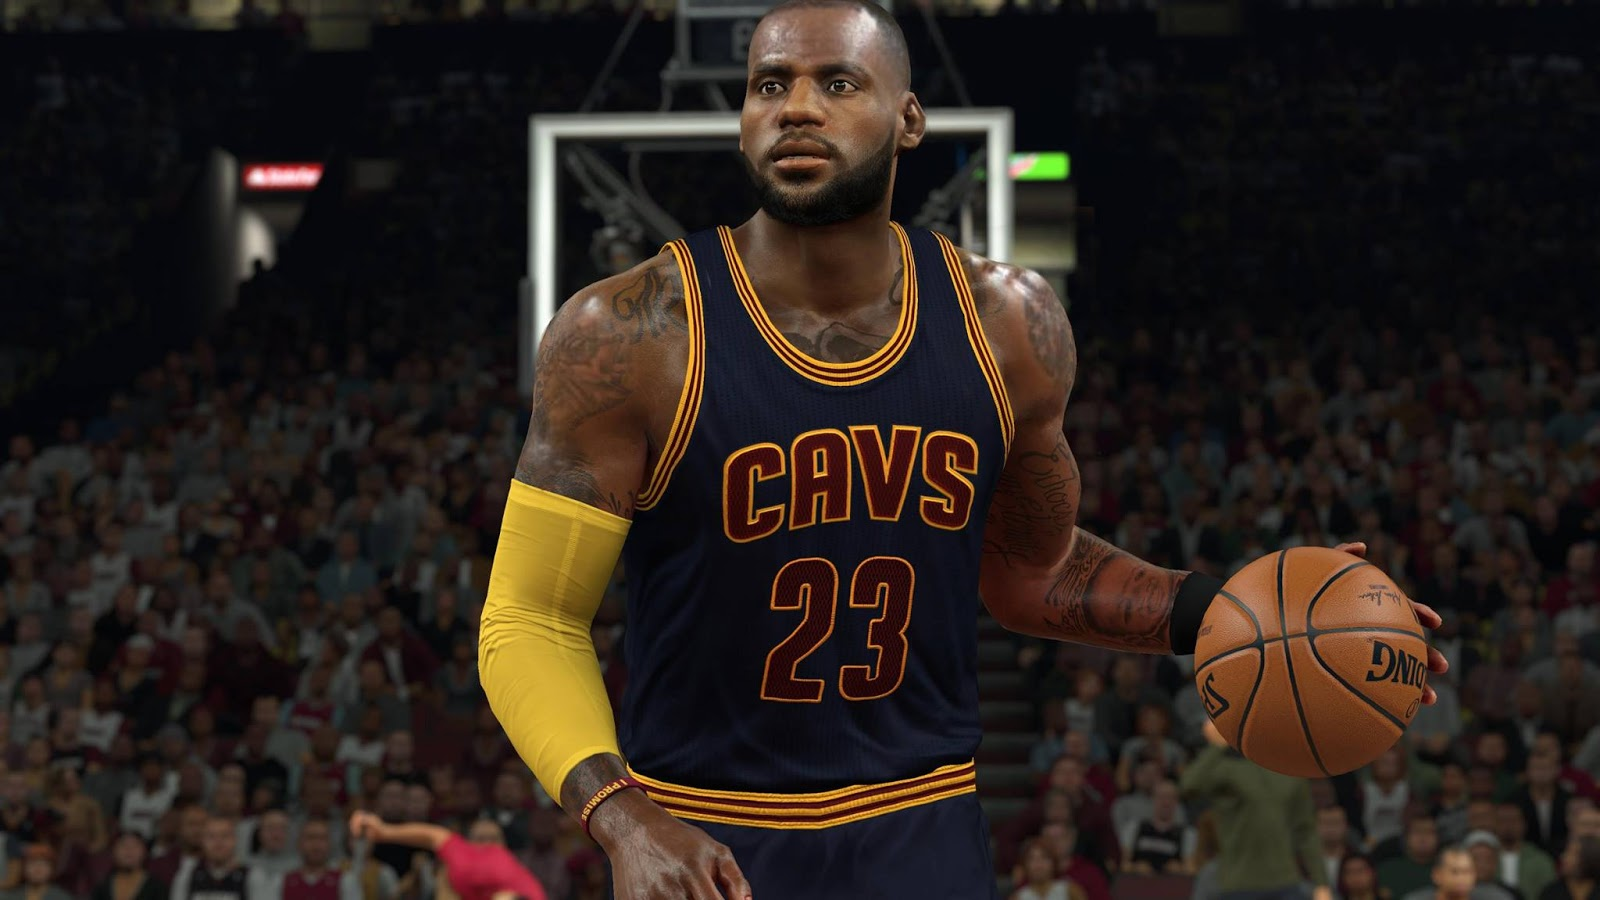 DNA Of Basketball | DNAOBB: NBA 2K17 Lebron James Cyberface (PLAYOFFS) by Basagre28